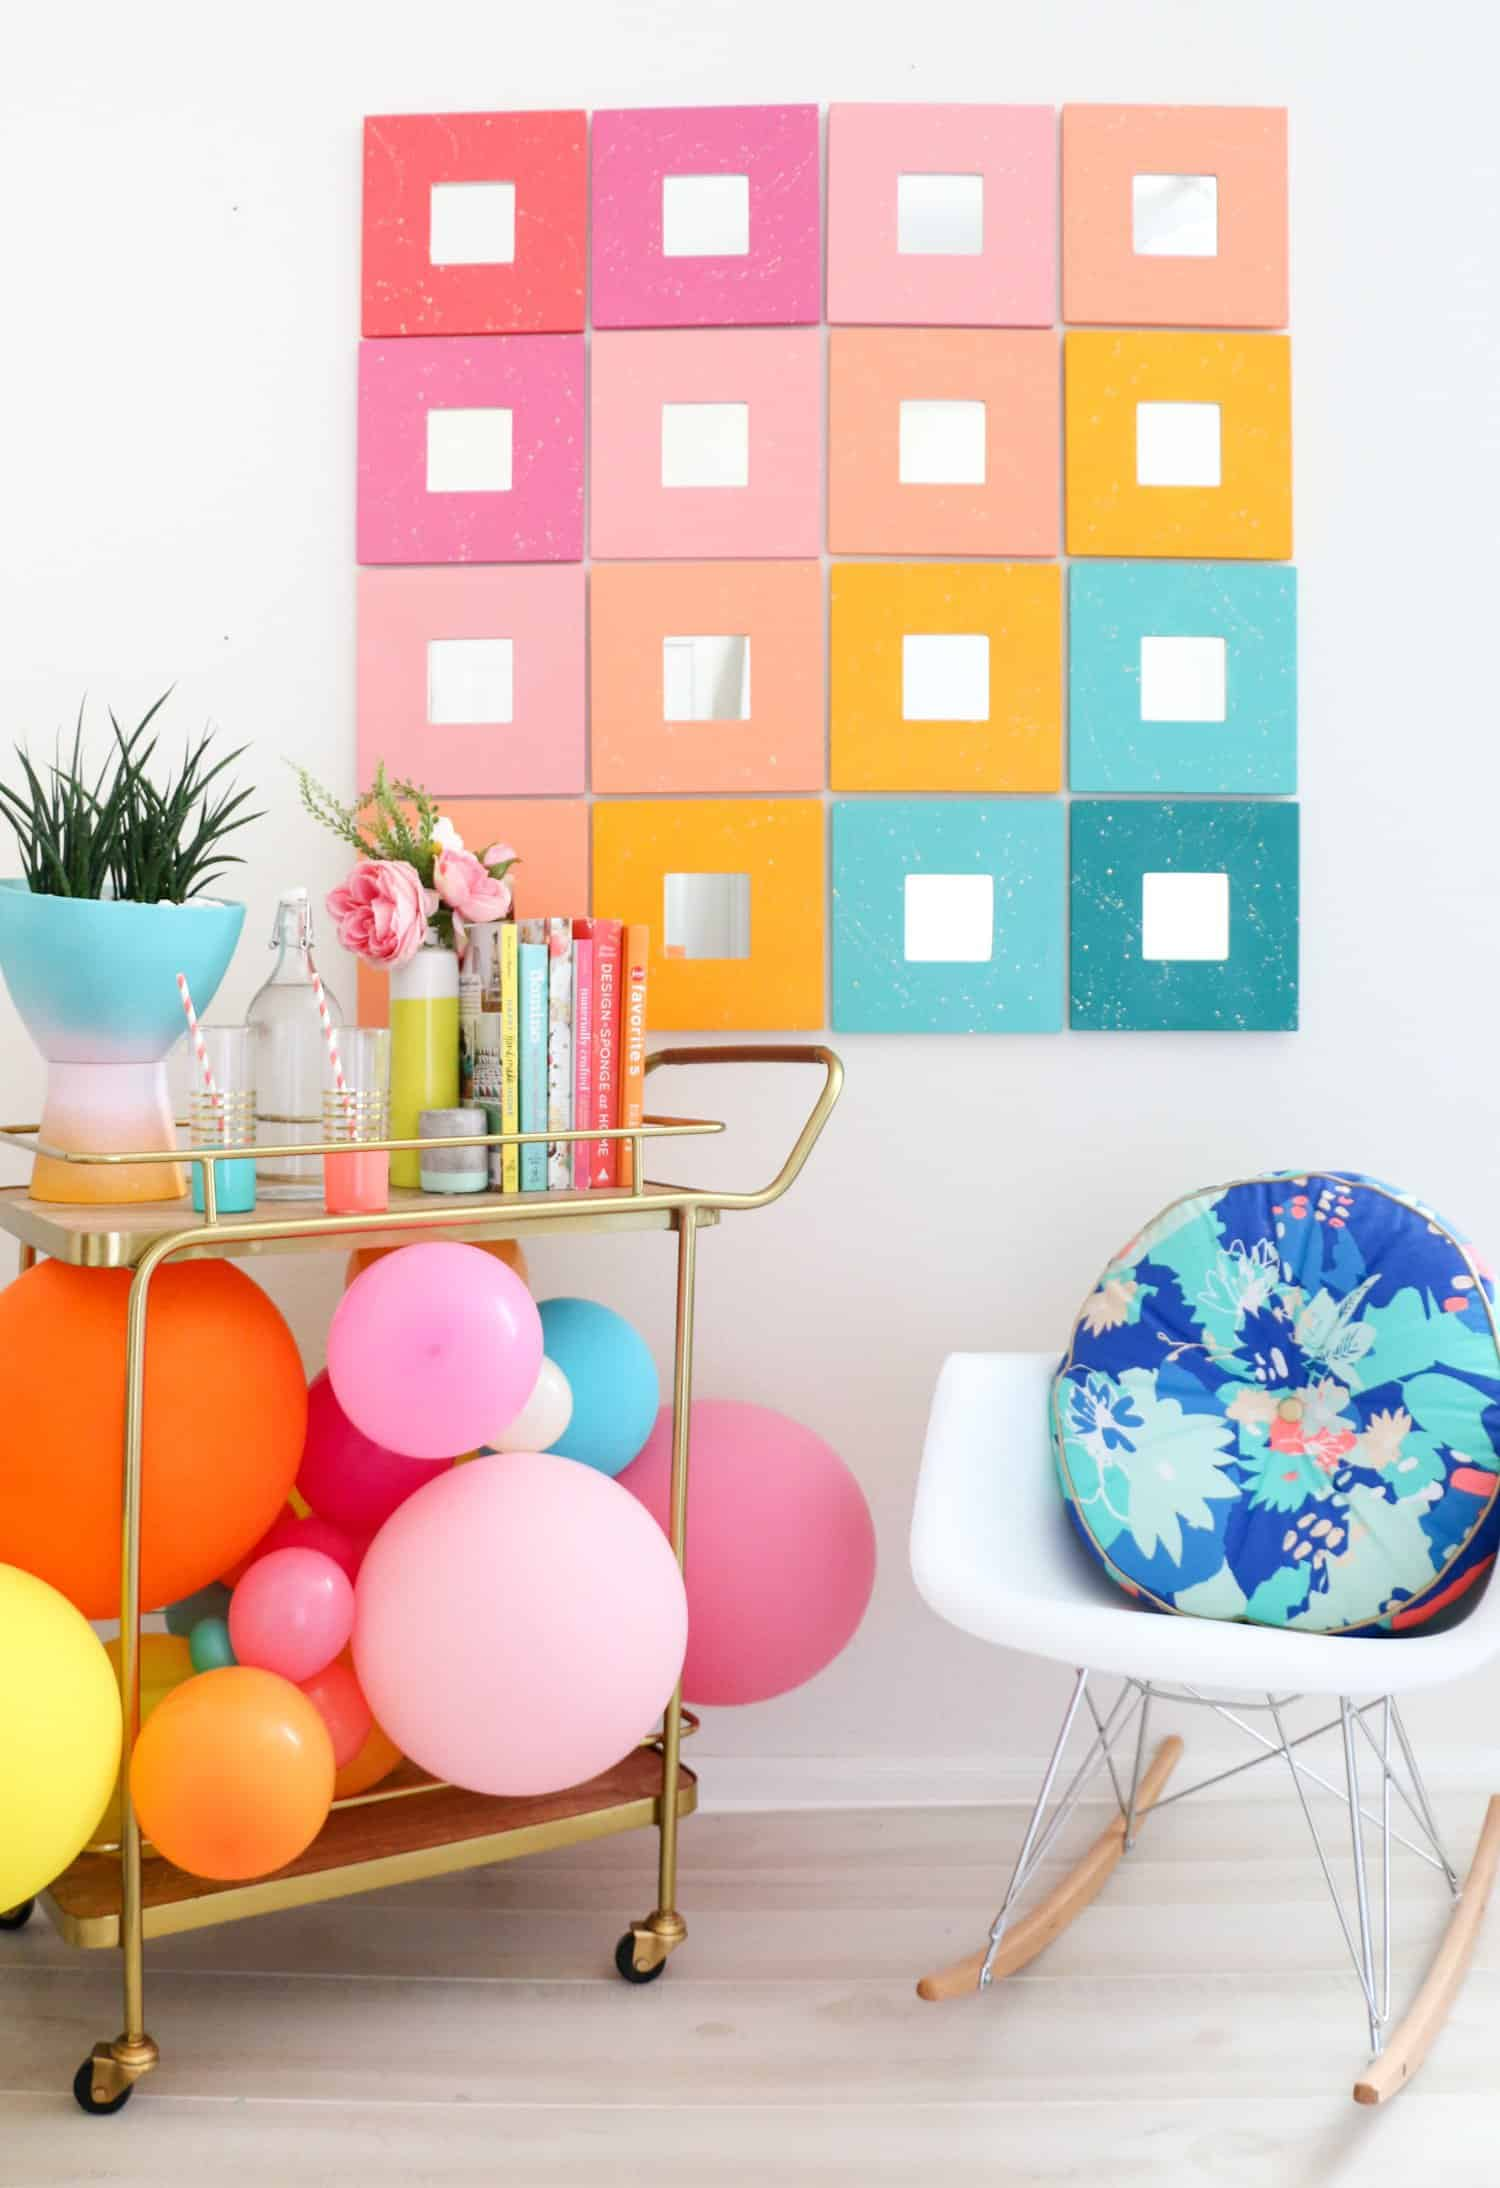 DIY-Splatter-Painted-Mirror-Wall-Art-Click-Through-for-Tutorial